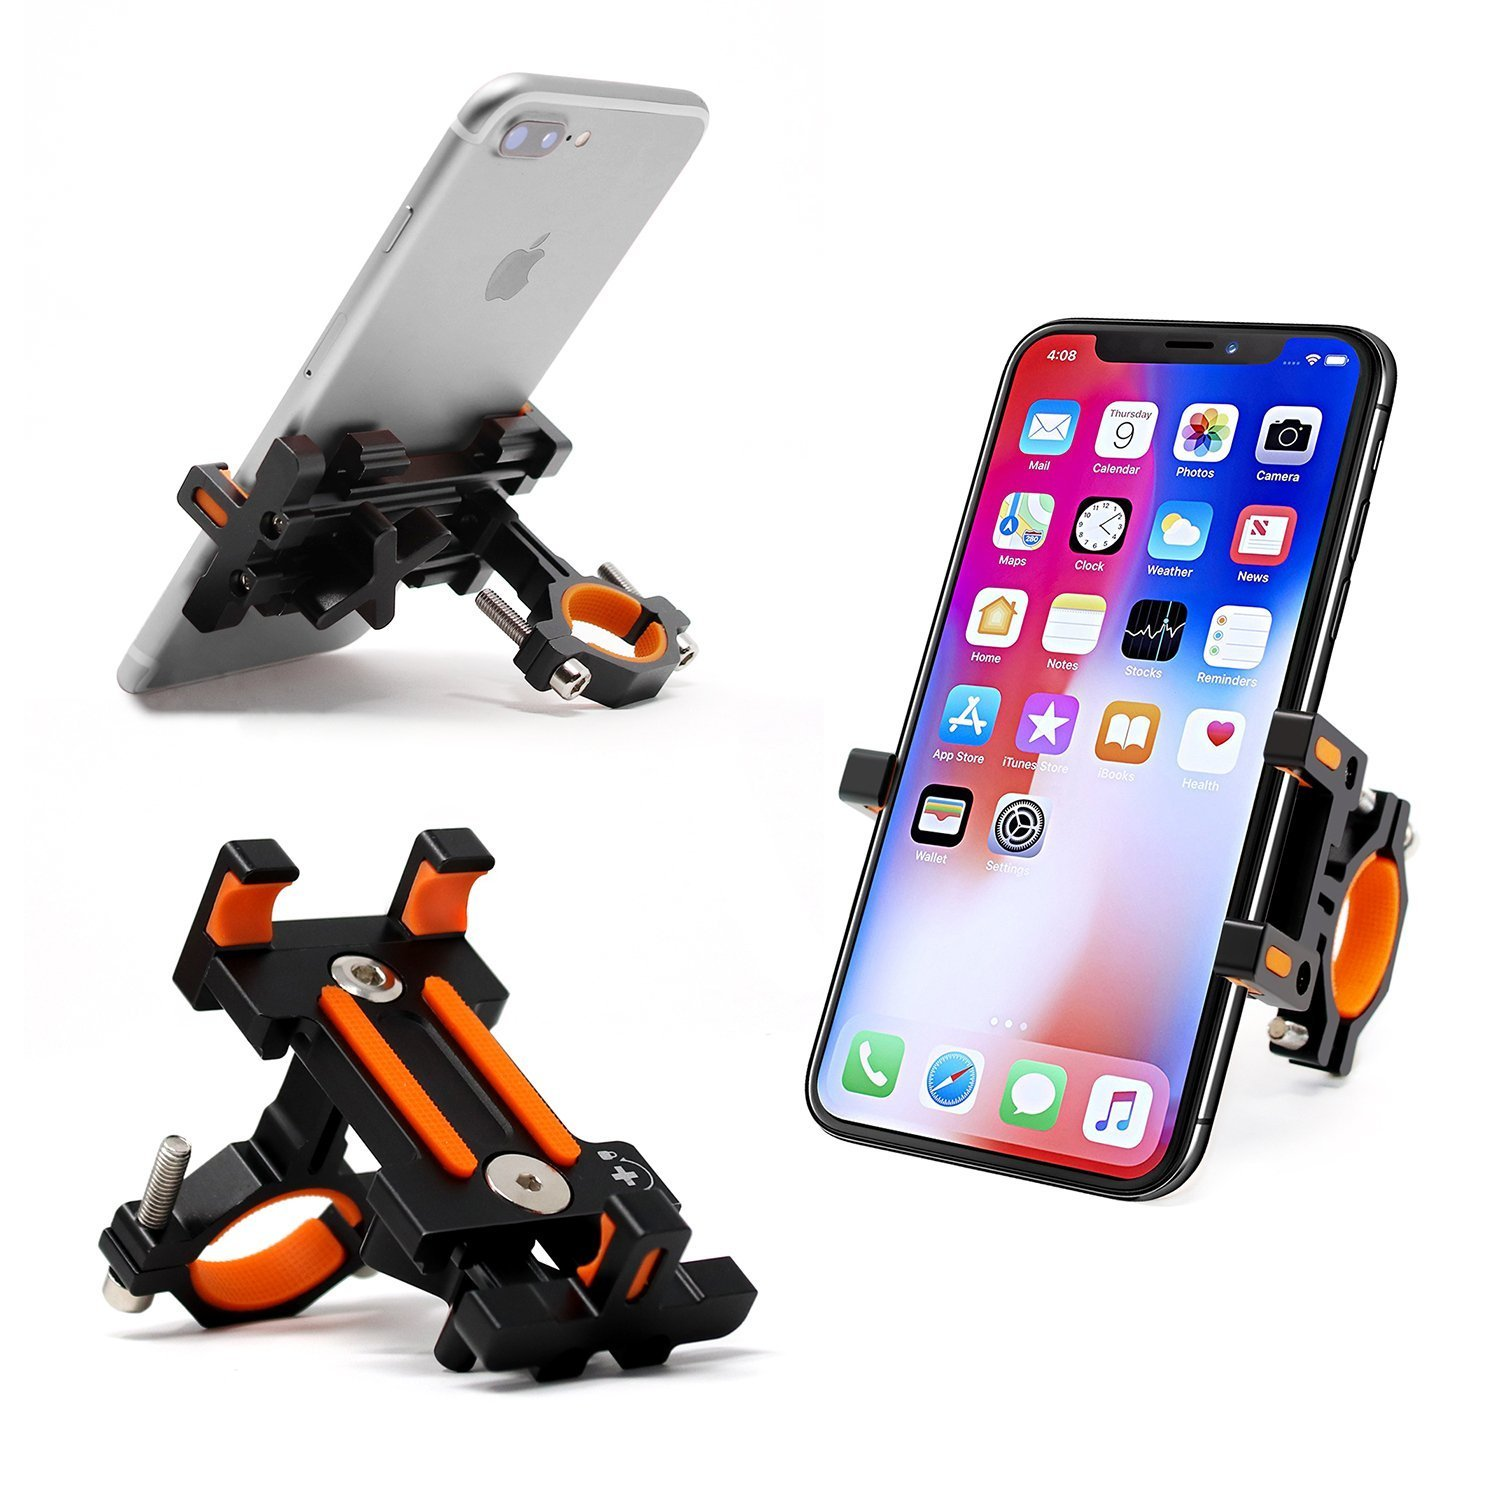 Sporcis Bike Phone Mount, Bicycle Motorcycle Handlebars Mobile Phone Holder with 360 ° Rotation Adjustable, Fits iPhone X, 8 | 8 Plus, 7 | 7 Plus, iPhone 6s | 6s Plus, Galaxy S7/ S6/ S5 by Sporcis (Image #9)